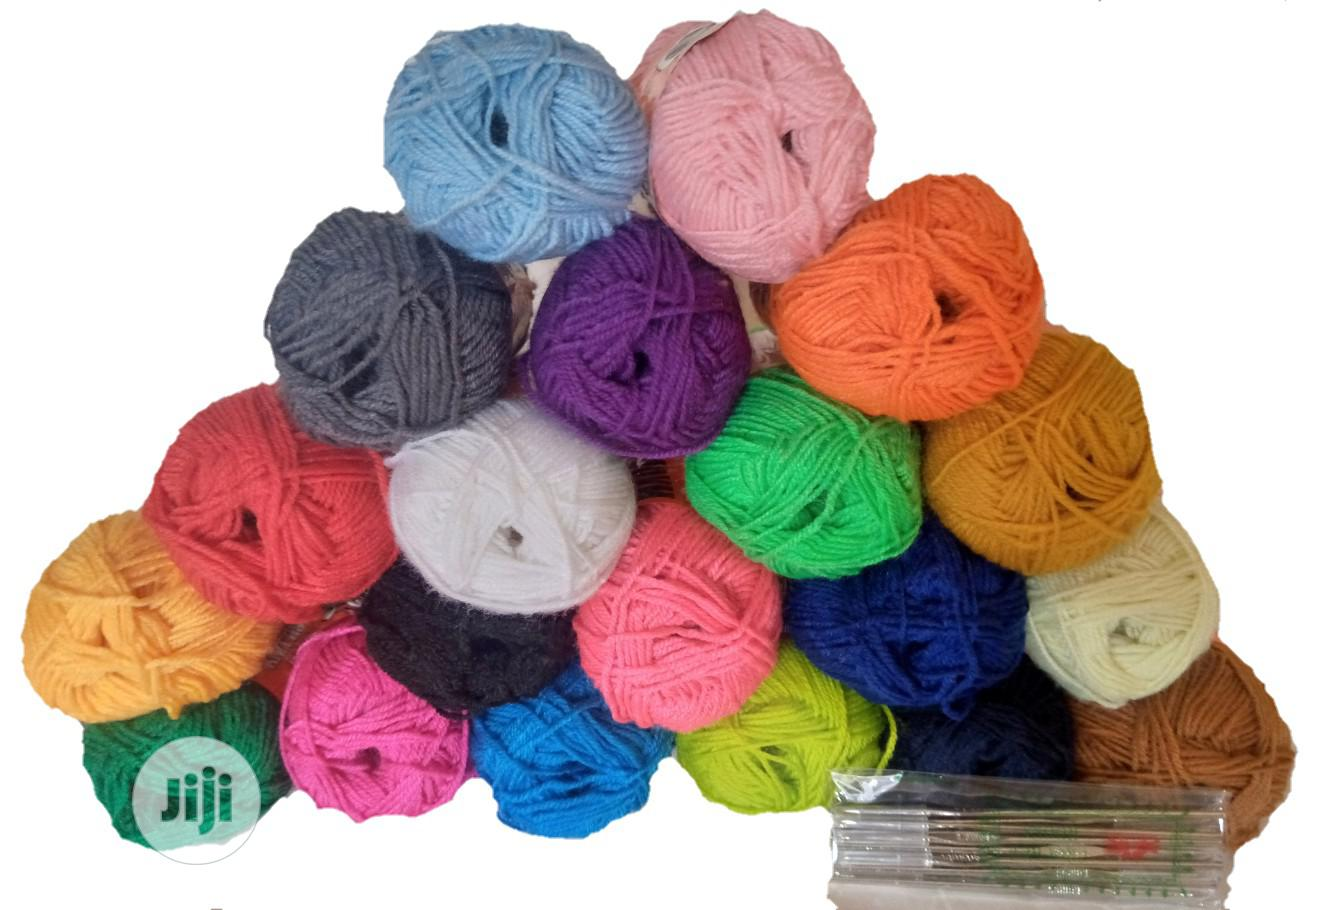 20 Pieces Colorful Knitting Yarn + 12 Crochet Pins